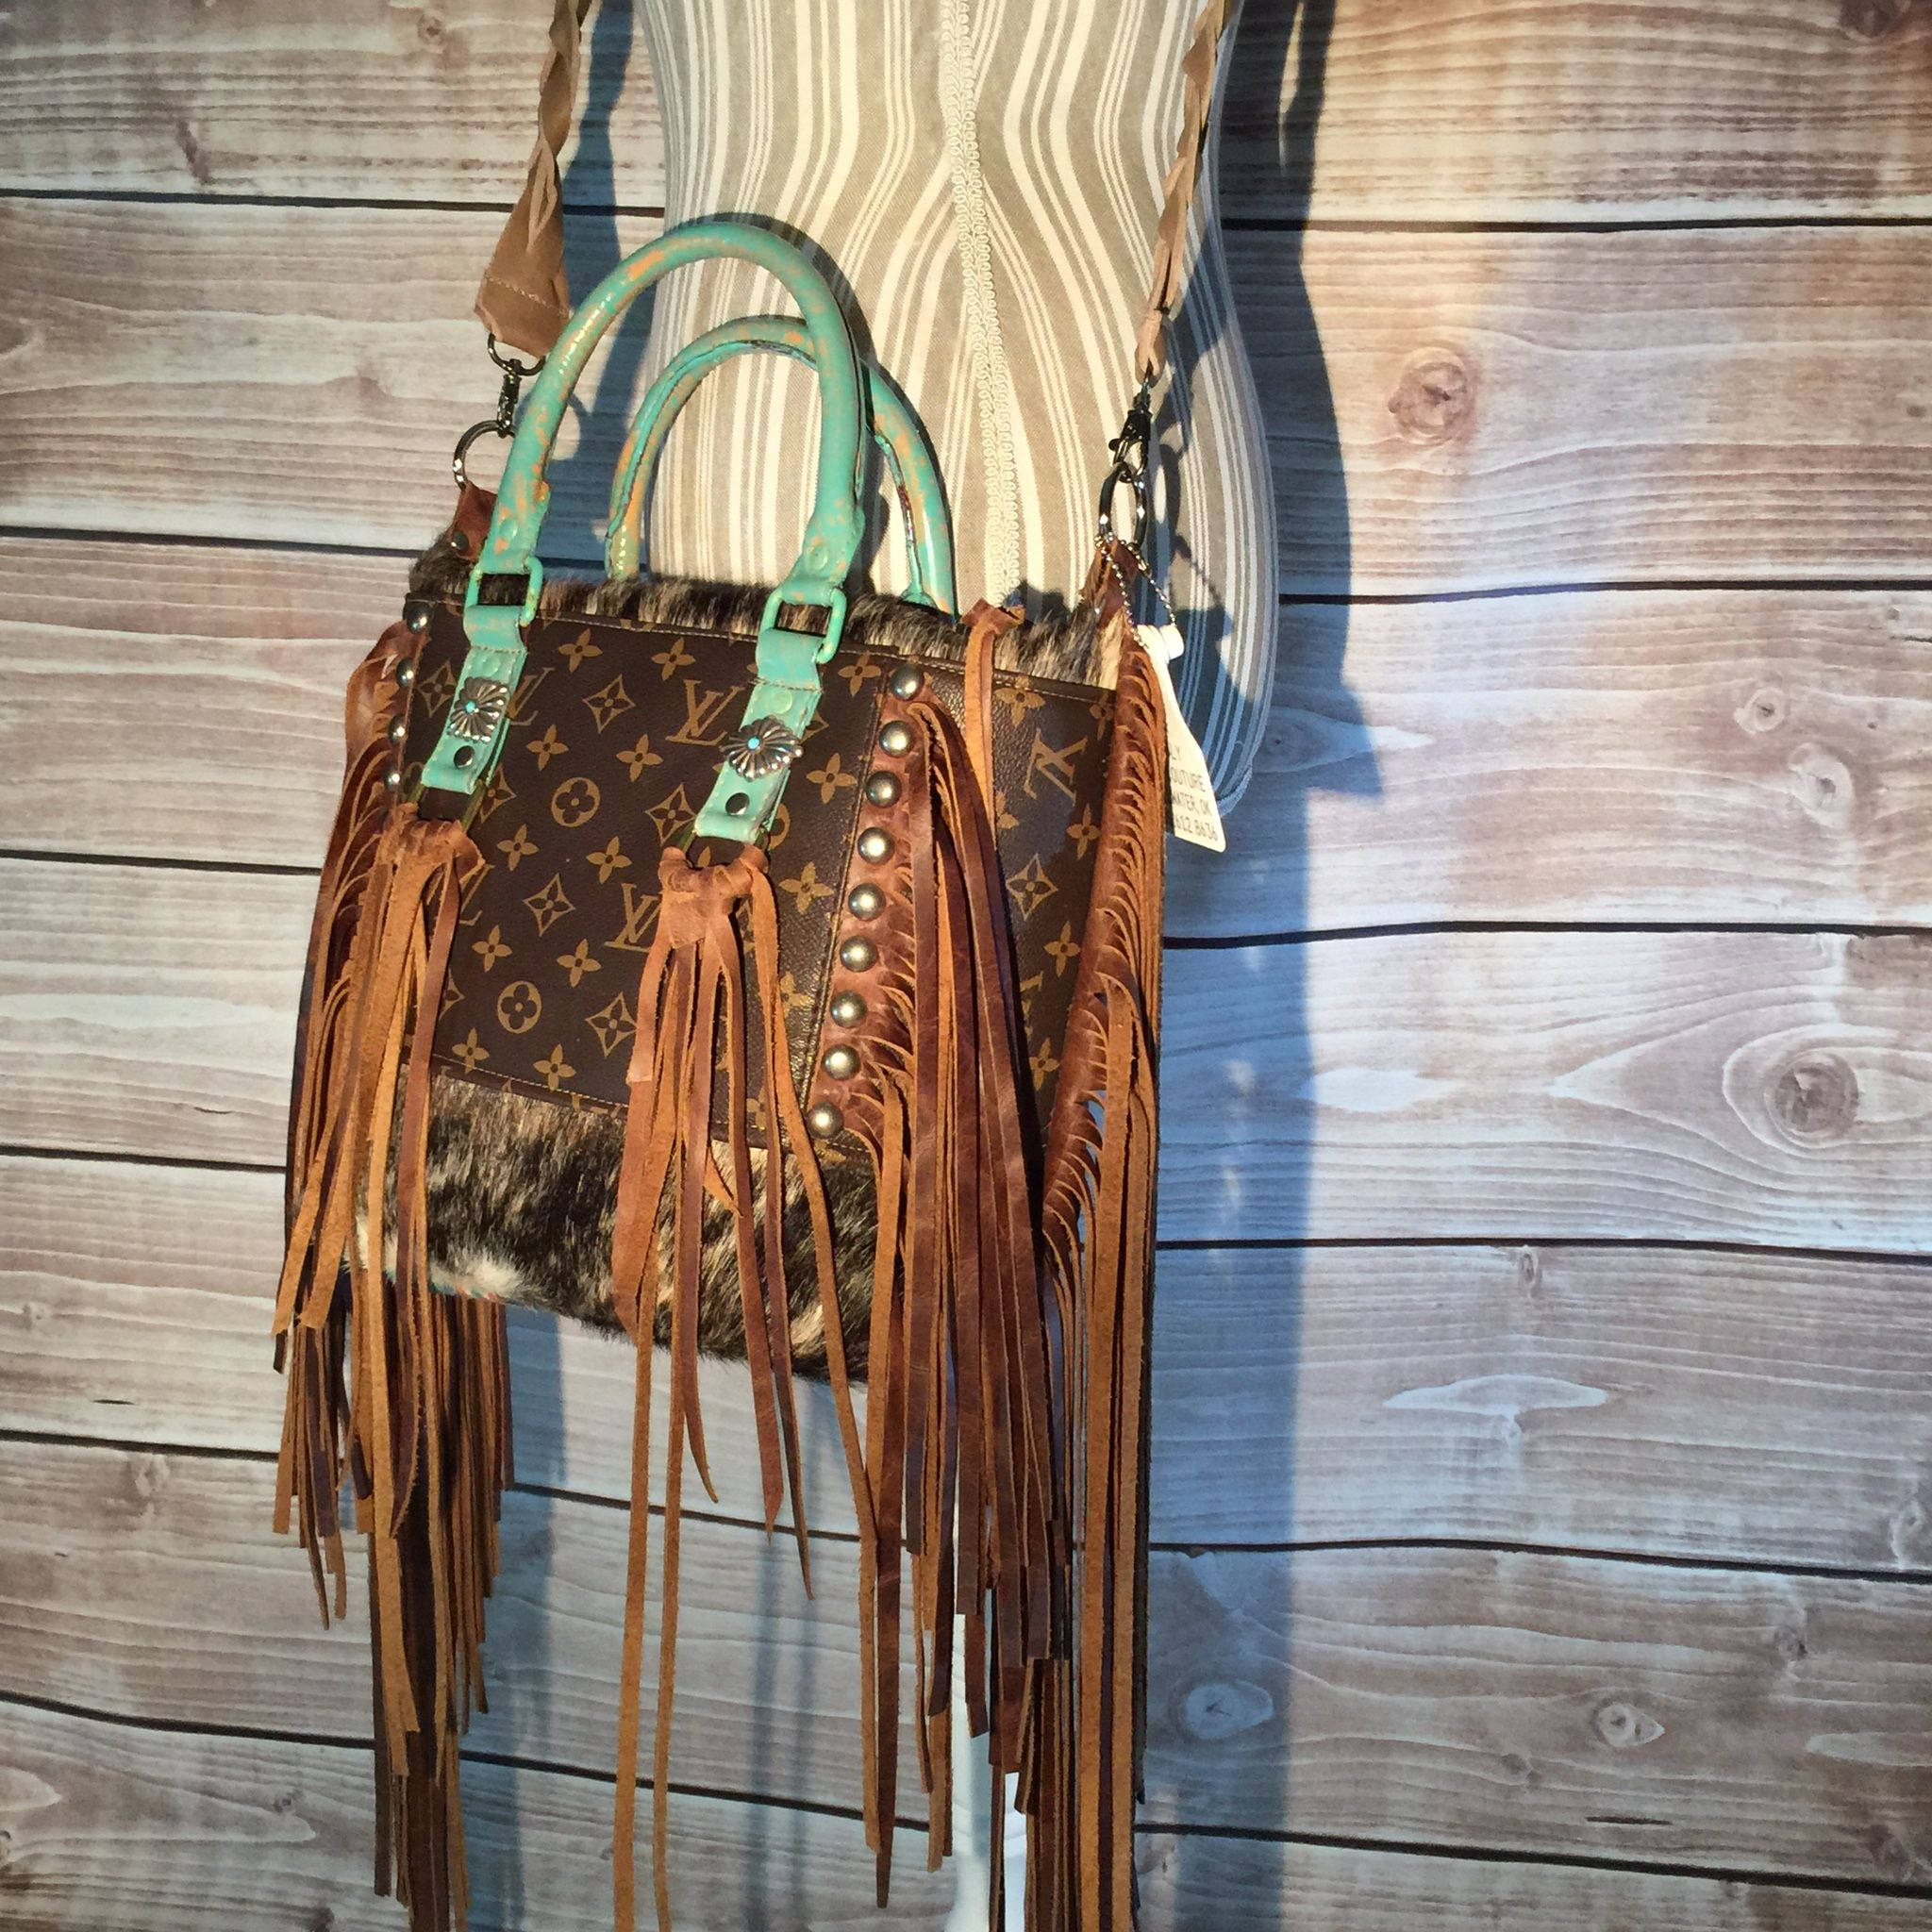 Holy Cow Couture Lv Fringe Handbags Purse Tote Purses And